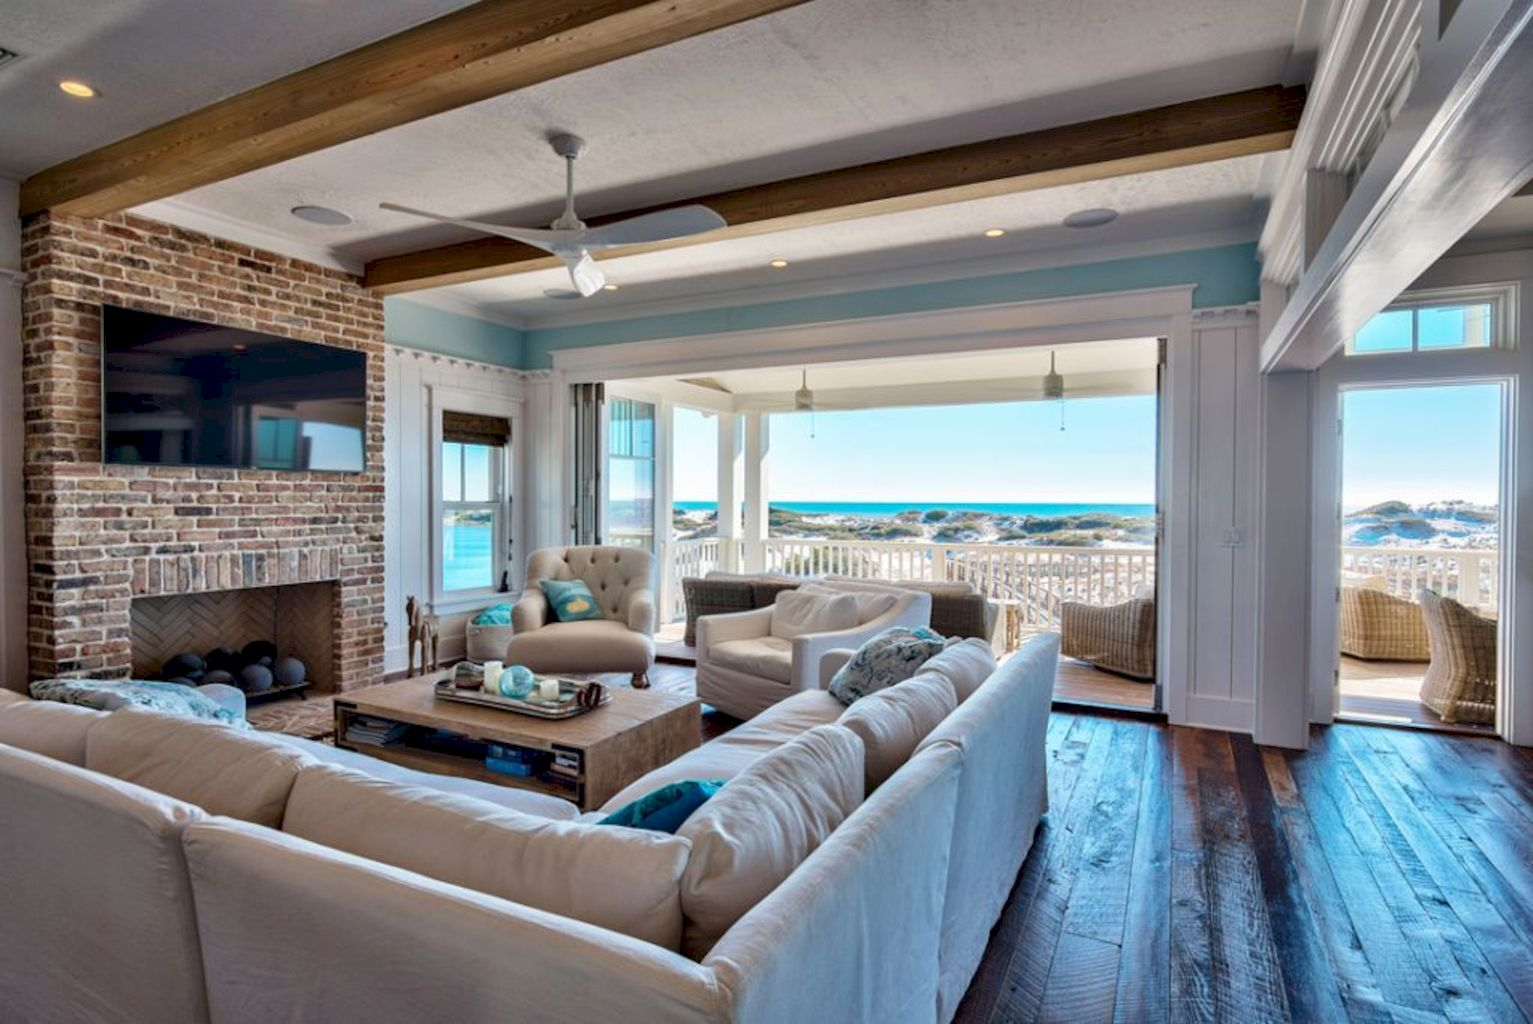 Shining Coastal Home Living Room With Relaxing And Fresh